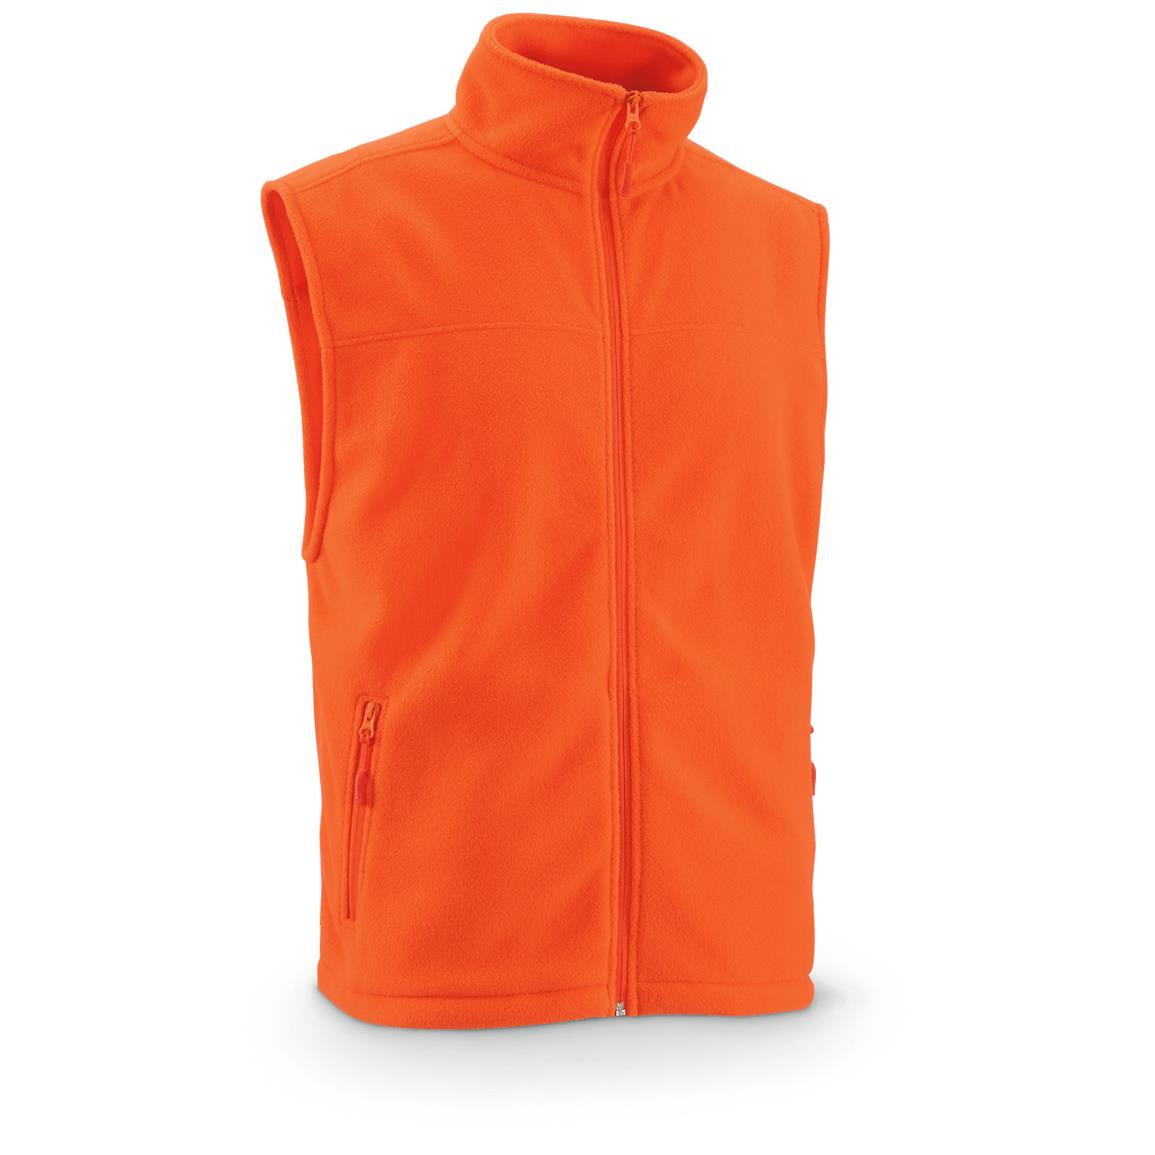 Guide Gear Men's Fleece Vest, Blaze